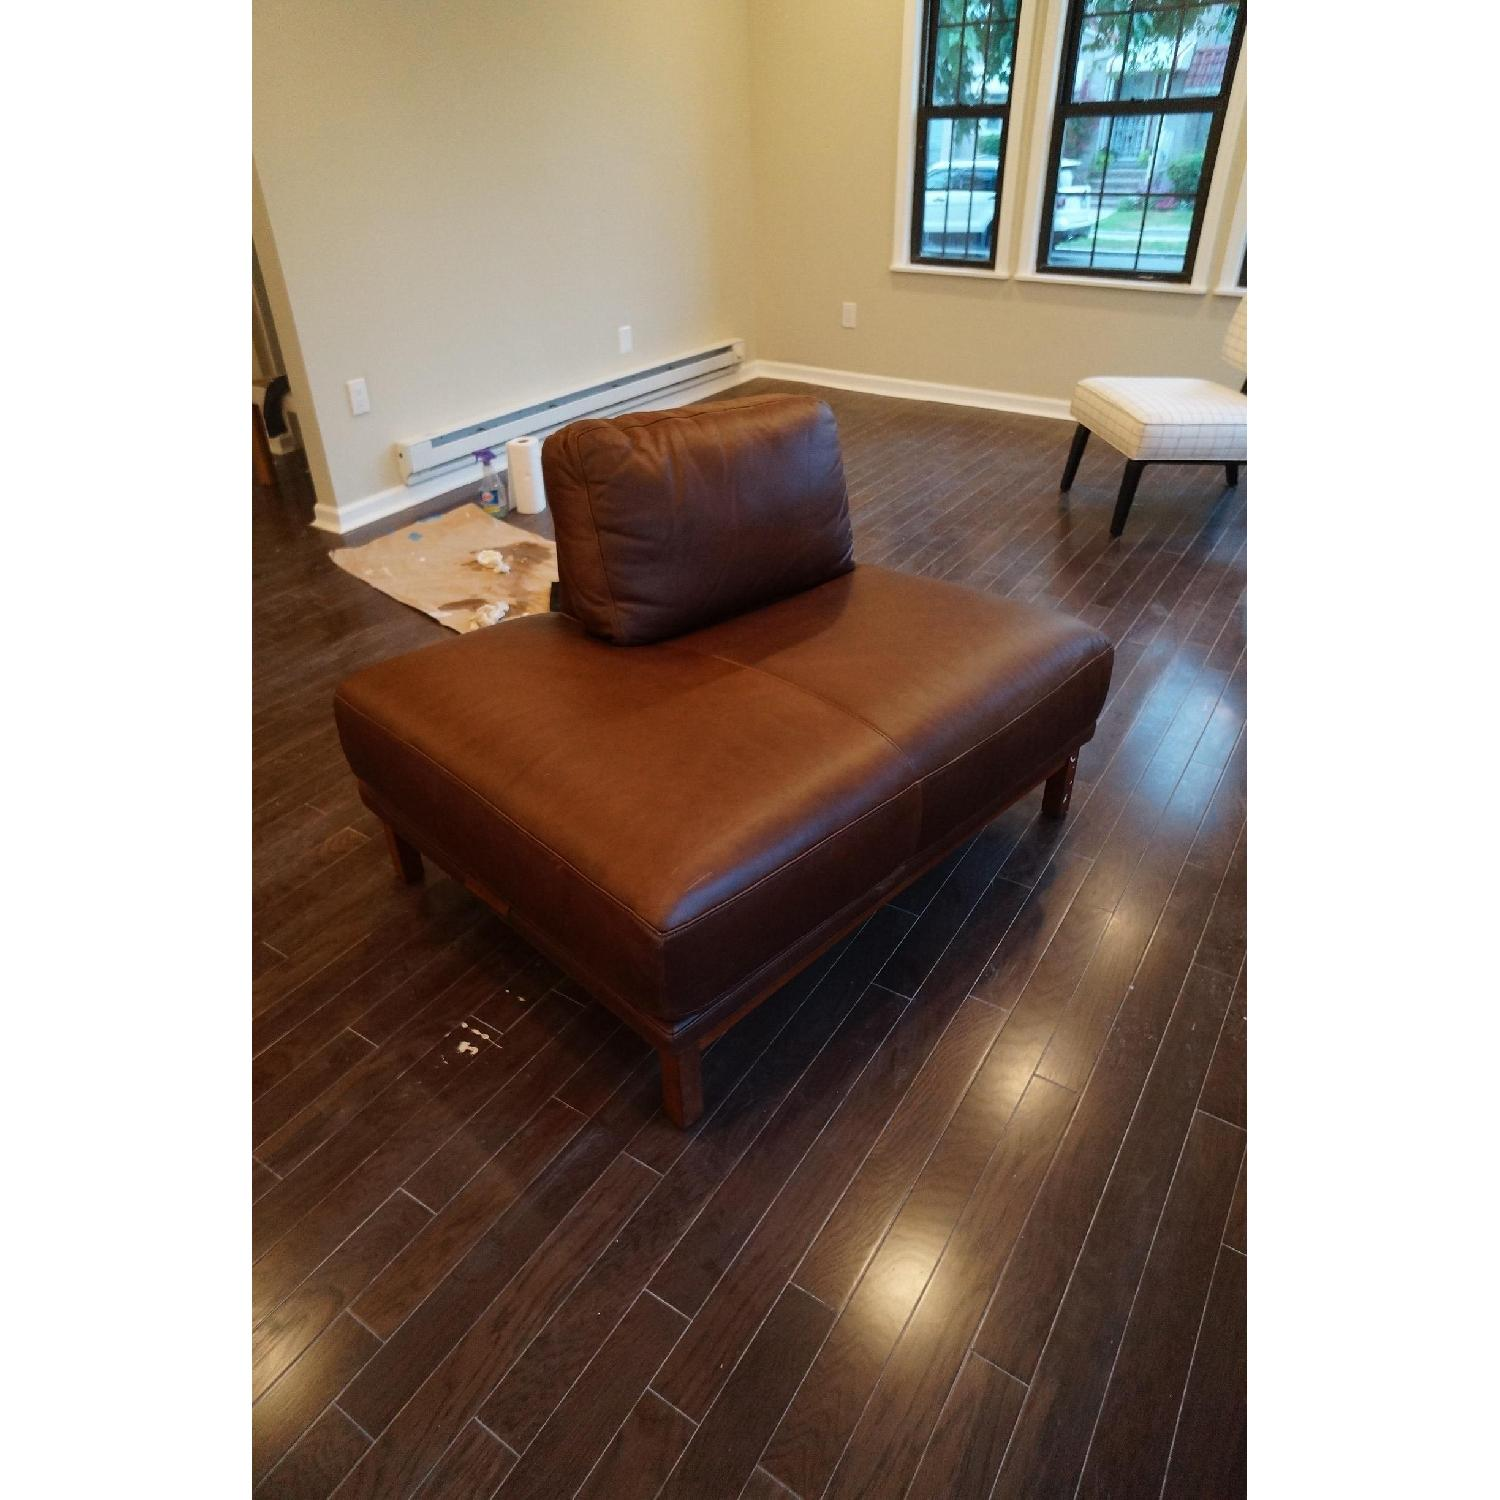 West Brown Leather Chaise Lounge Chair - image-0